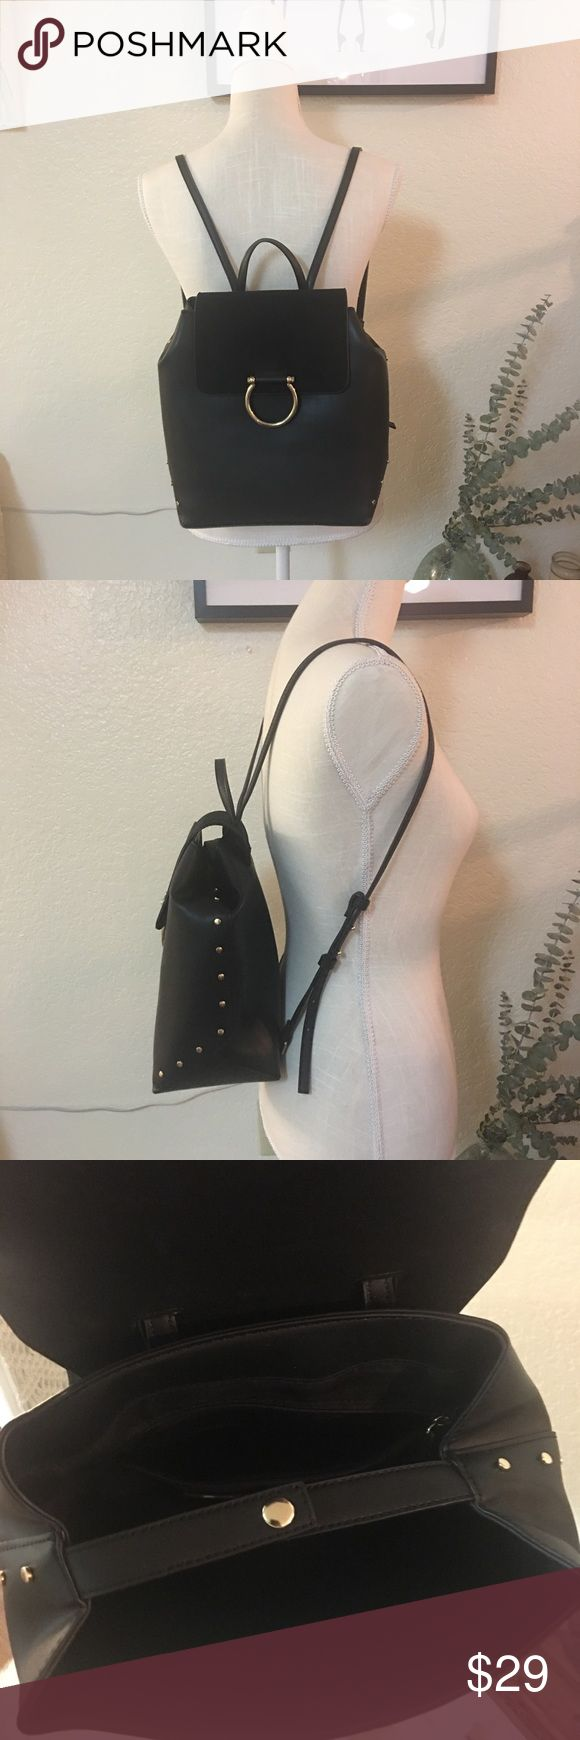 Topshop backpack Like new with gold detailing clean inside and out Topshop Bags Backpacks